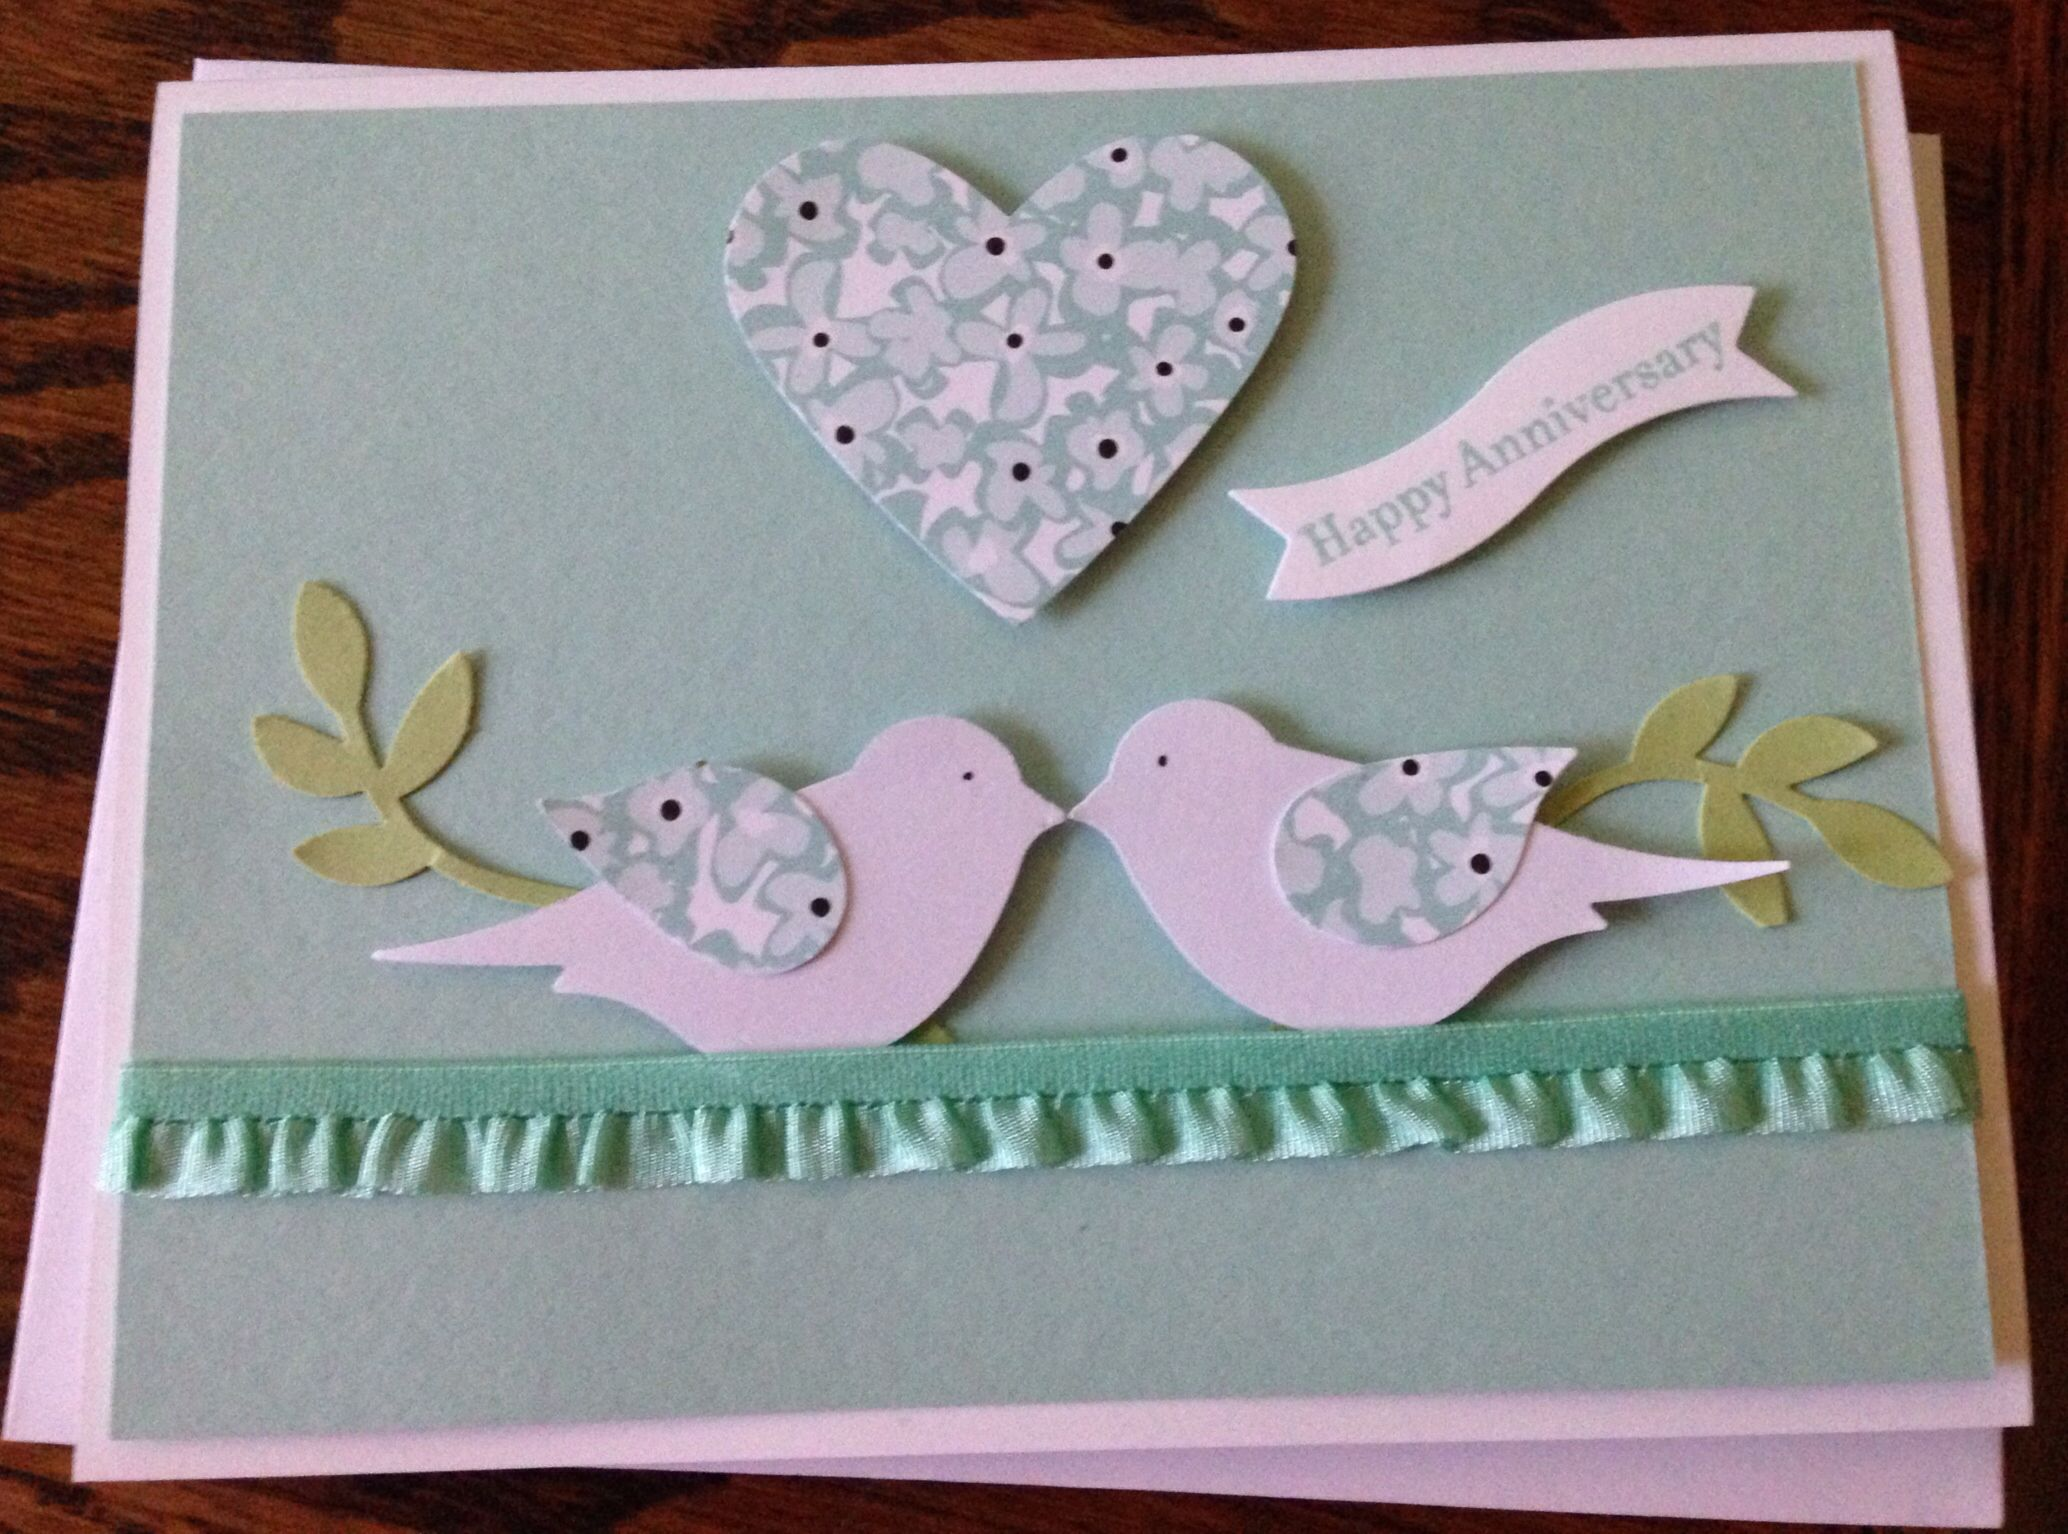 Stampin up anniversary card for my husband cards to make